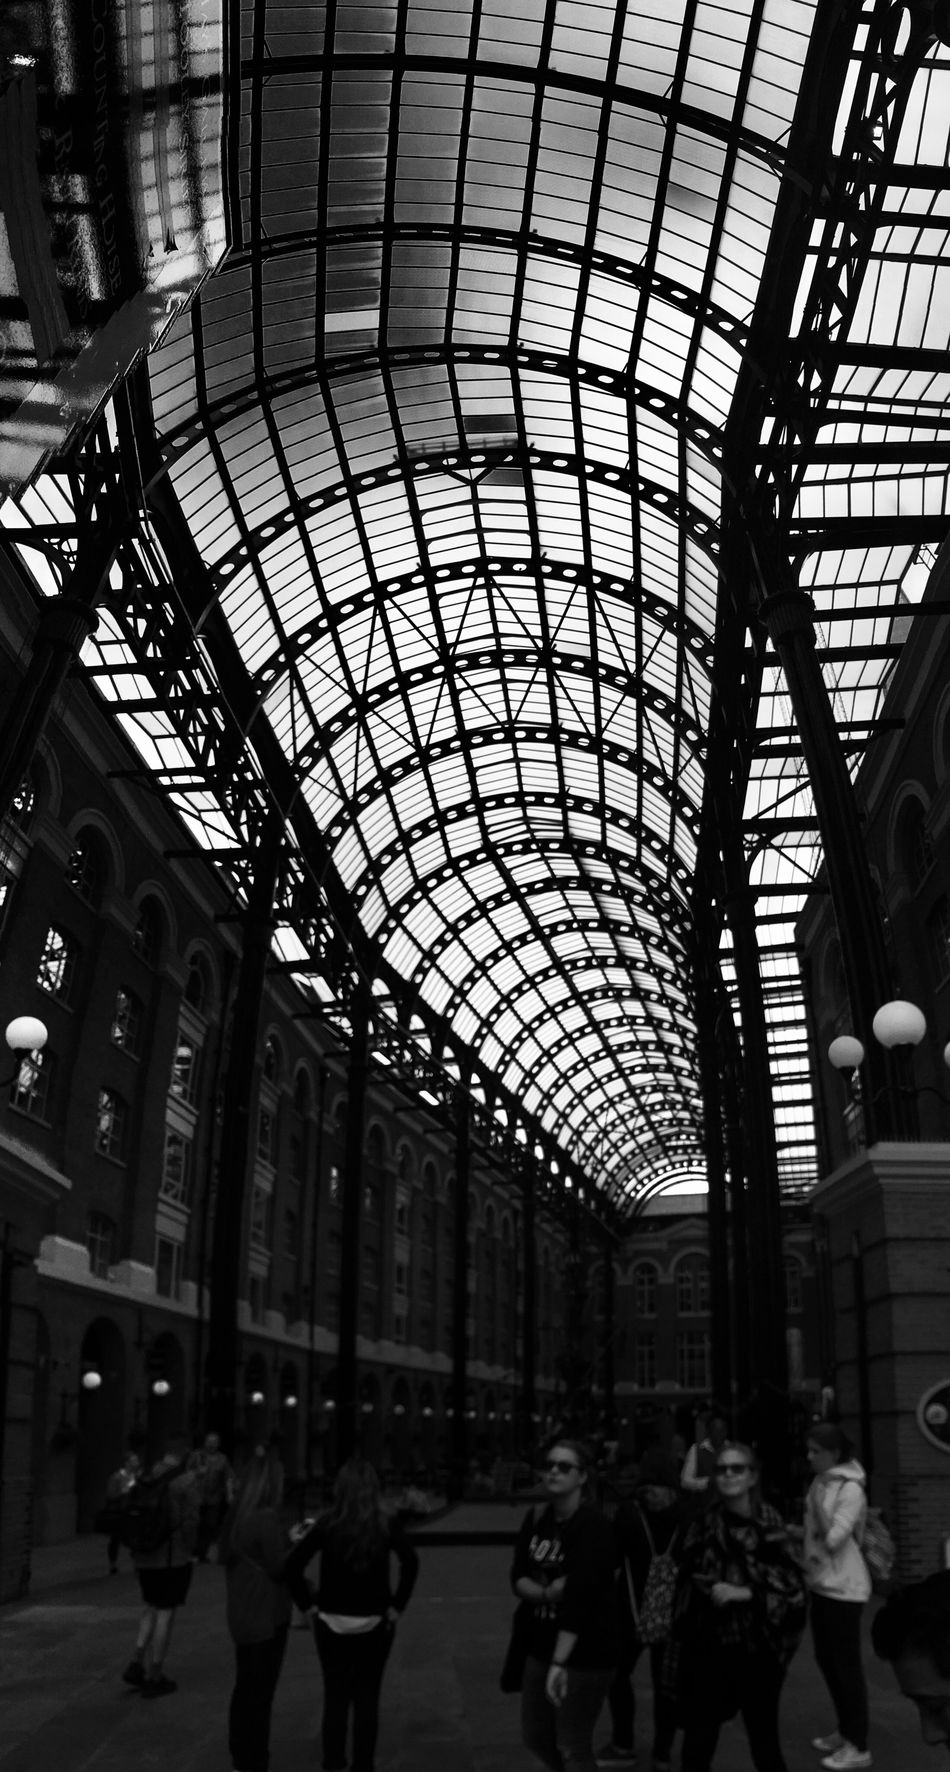 The Queen's Walk TheQueensWalk IPhoneography ShotOniPhone6 Blackandwhite Architecture Glass Roof London United Kingdom Londonlifestyle